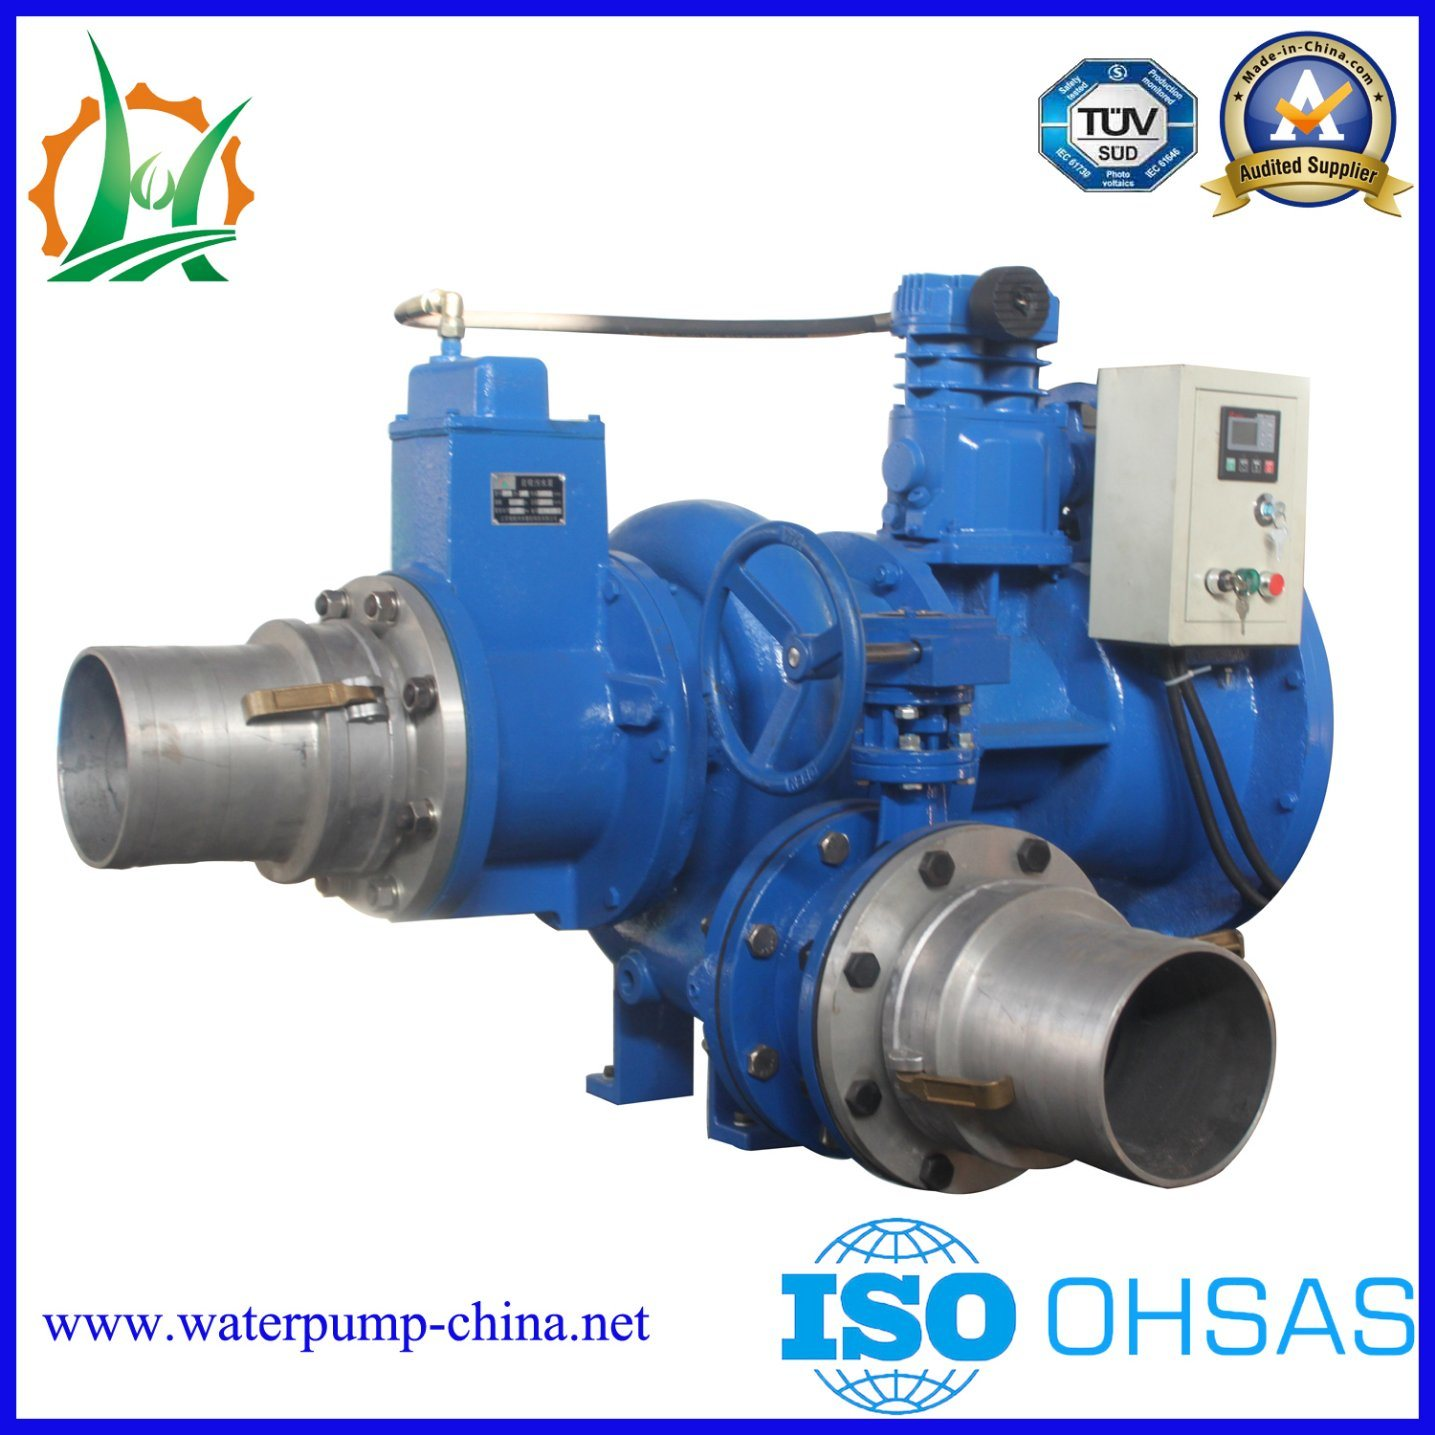 Big Flow Diesel Drive Dry Run Self Priming Centrifugal Pump